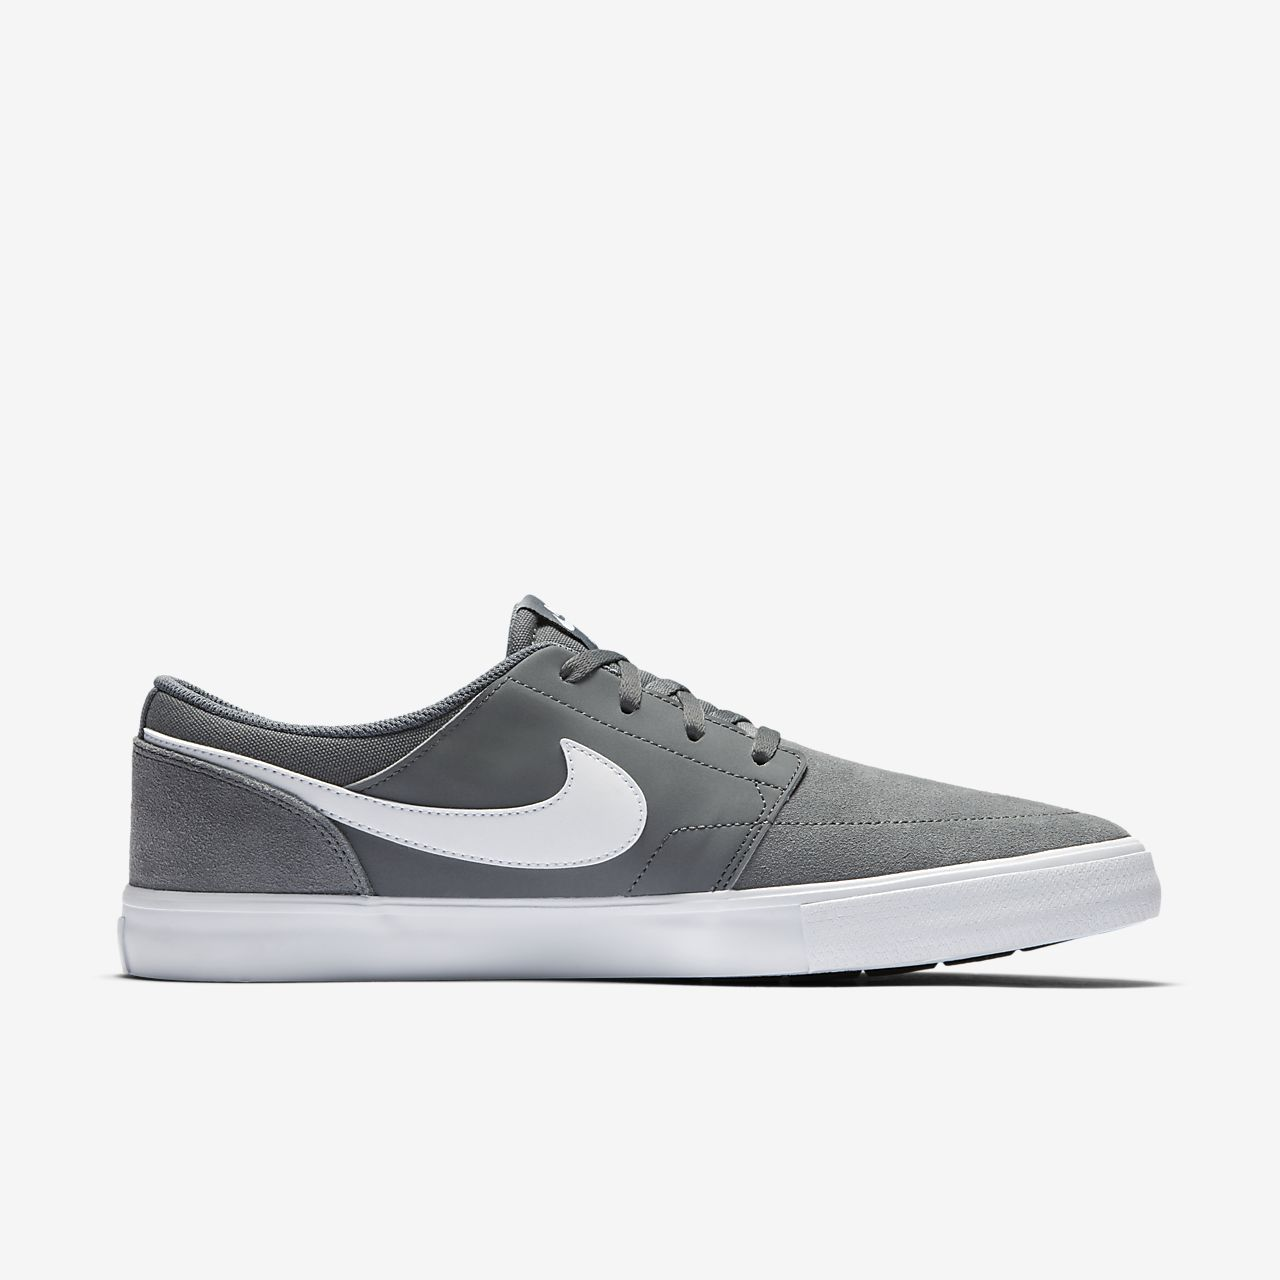 Chaussures Nike Sb Blanc Collection Taille 46 Hommes VrAPvg